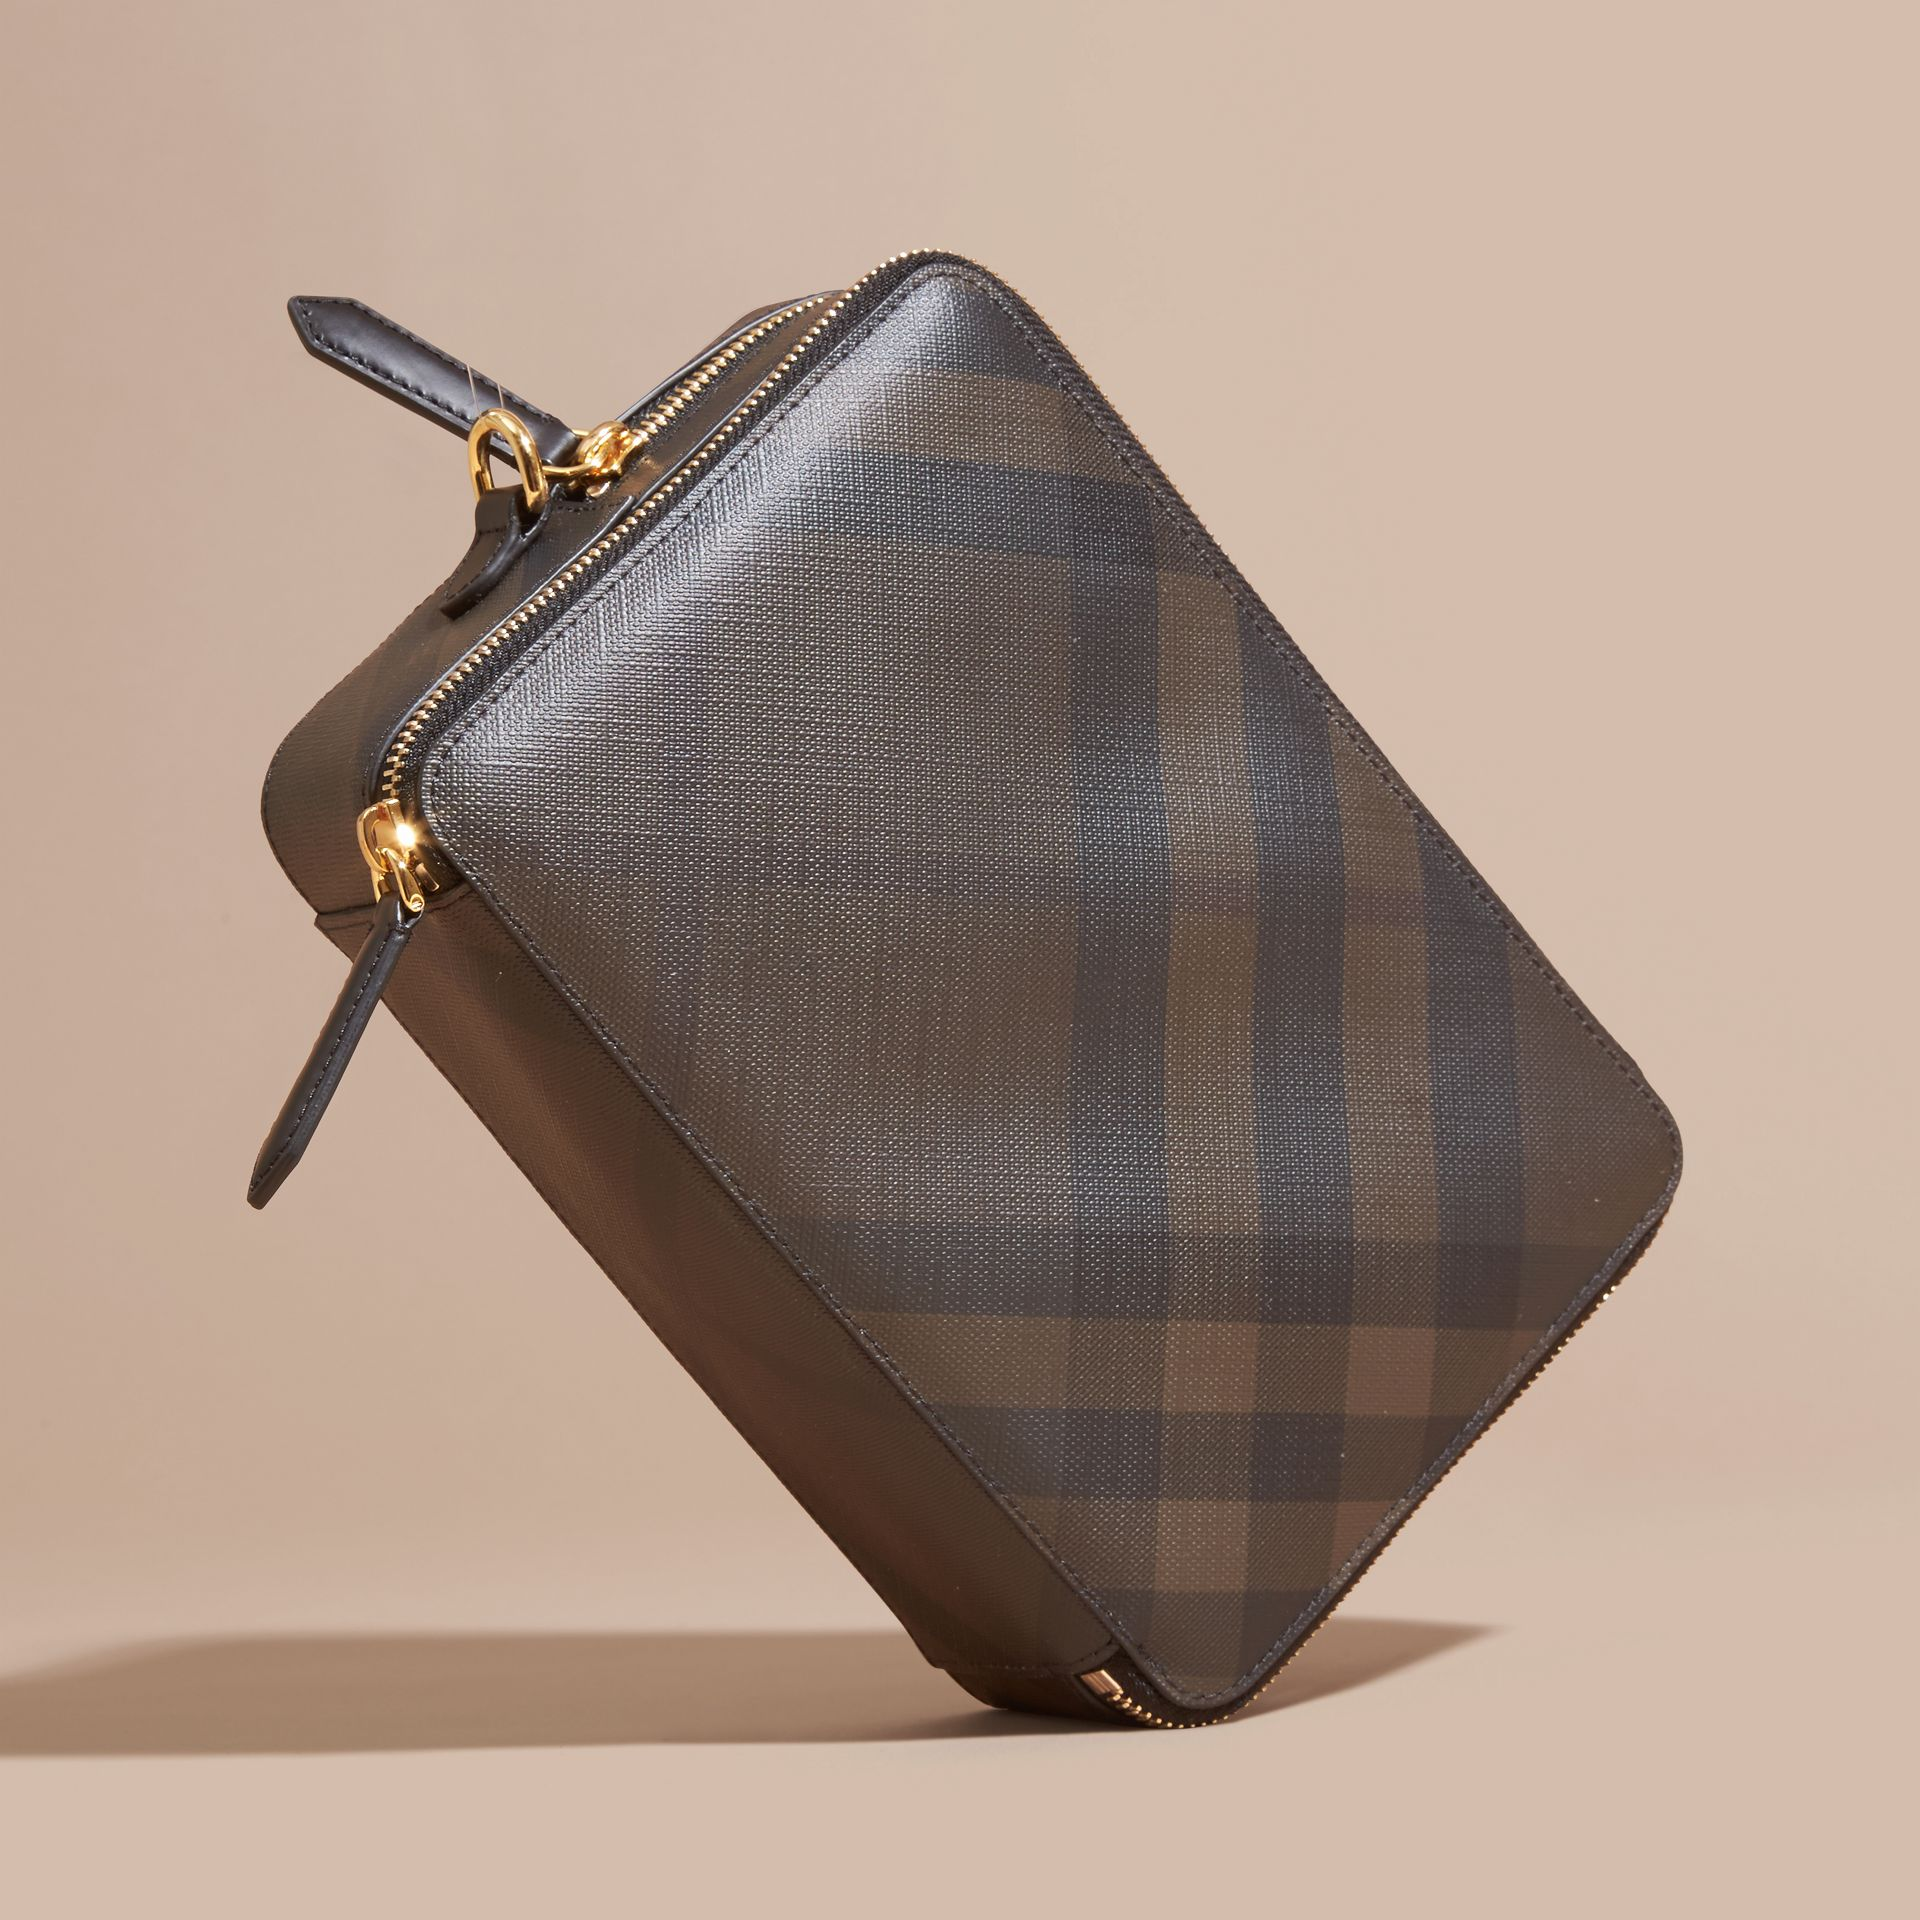 Leather-trimmed London Check Pouch in Chocolate/black - Men | Burberry United Kingdom - gallery image 5